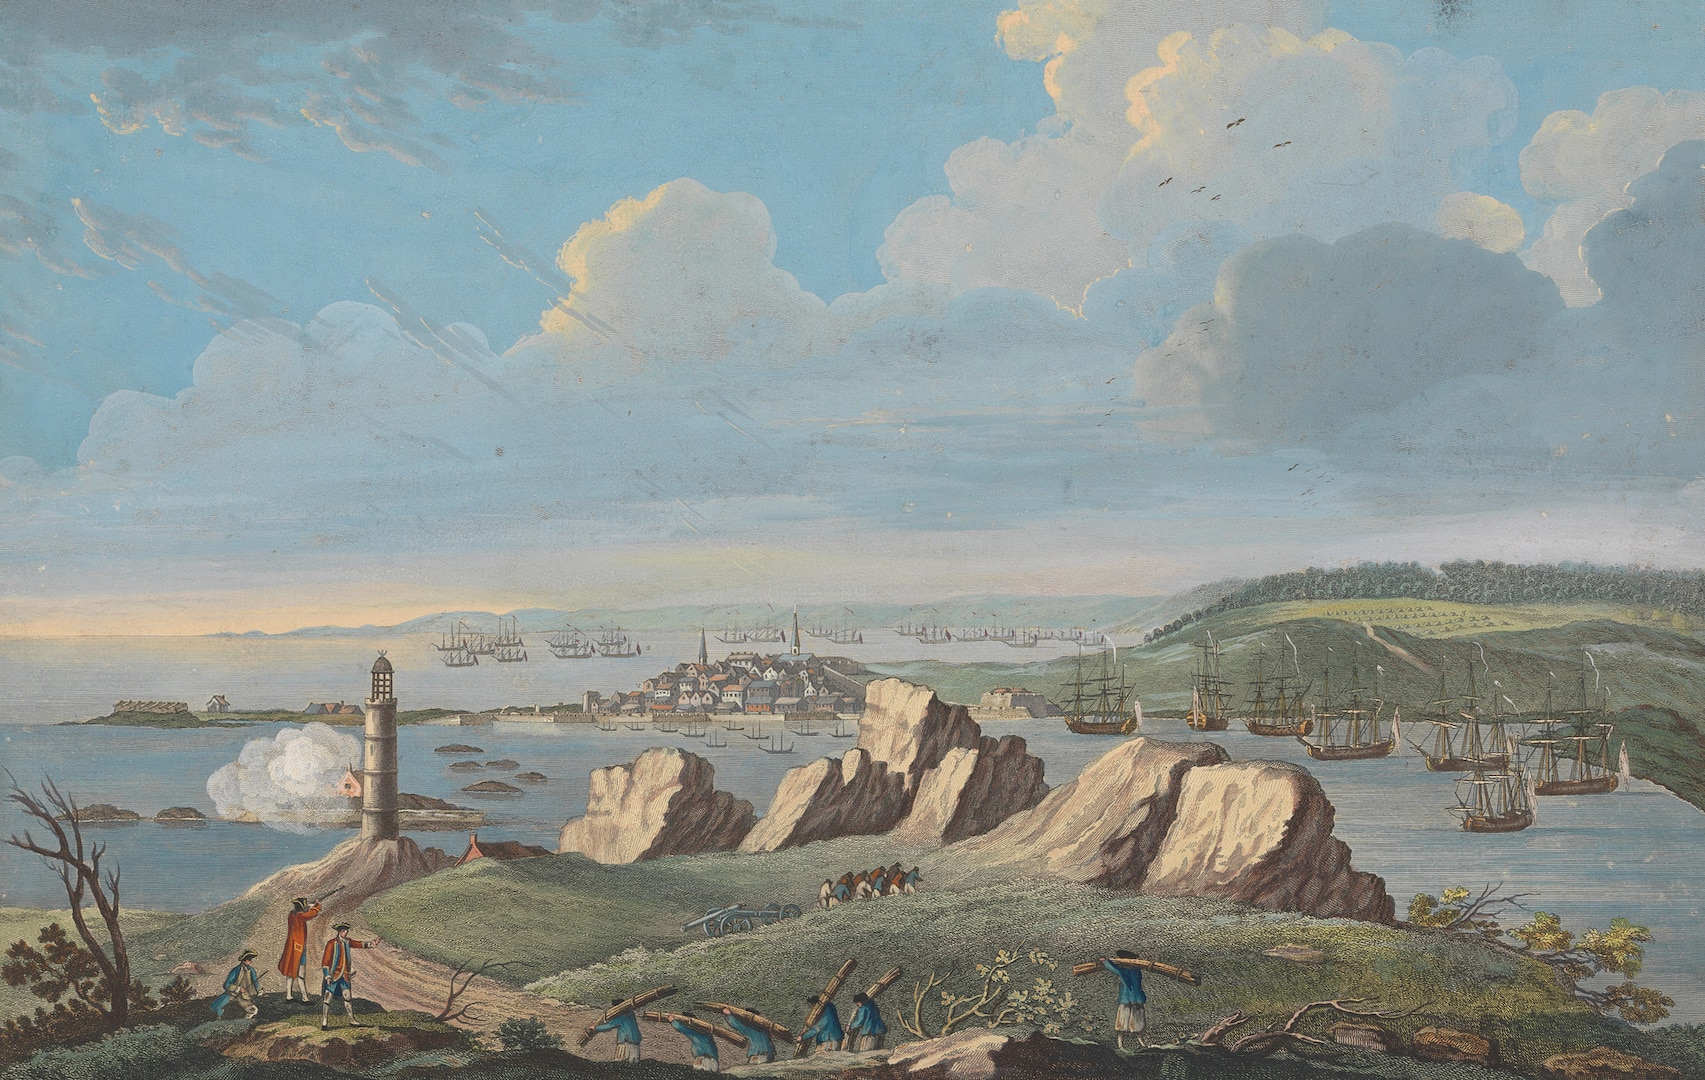 """""""View of Louisbourg when the city was besieged by British forces in 1758,"""" Captain Charles Ince, drawn on the spot, engraved by P. Canot, November 11, 1762 (Courtesy Yale Center for British Art, Paul Mellon Collection)"""